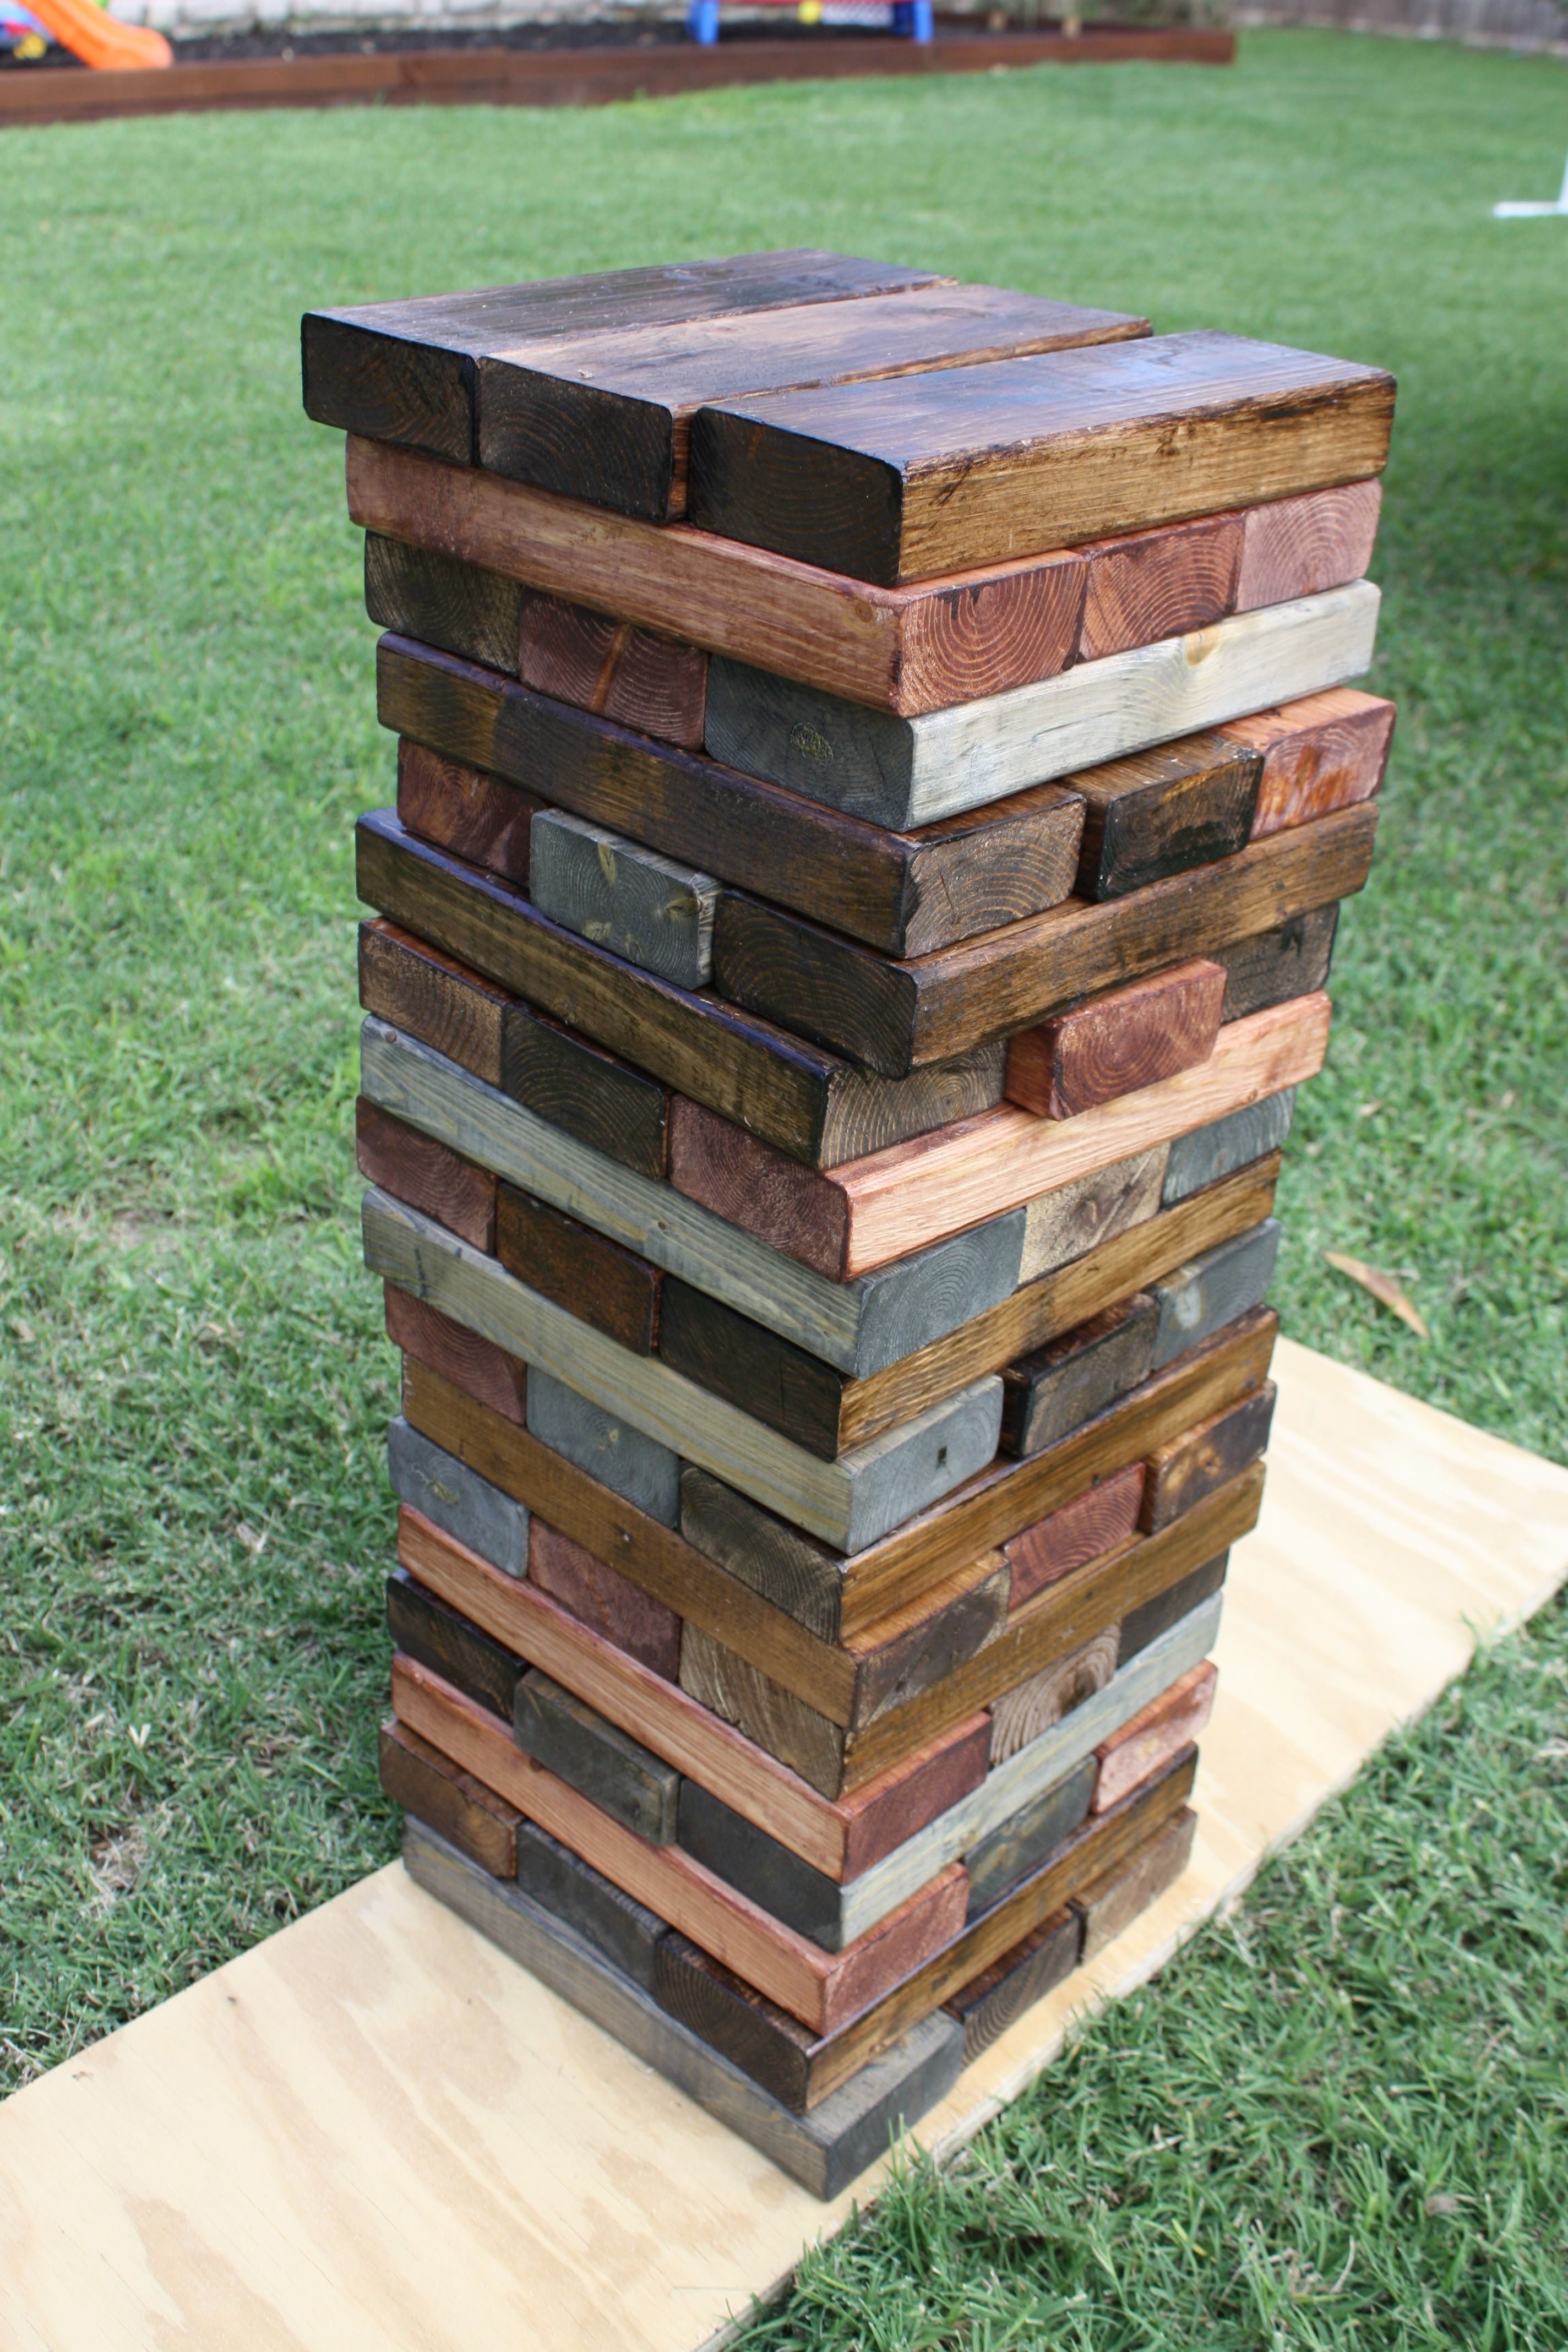 party/ giant lawn Jenga/ husbands birthday party ideastasting party/ giant lawn Jenga/ husbands birthday party ideas